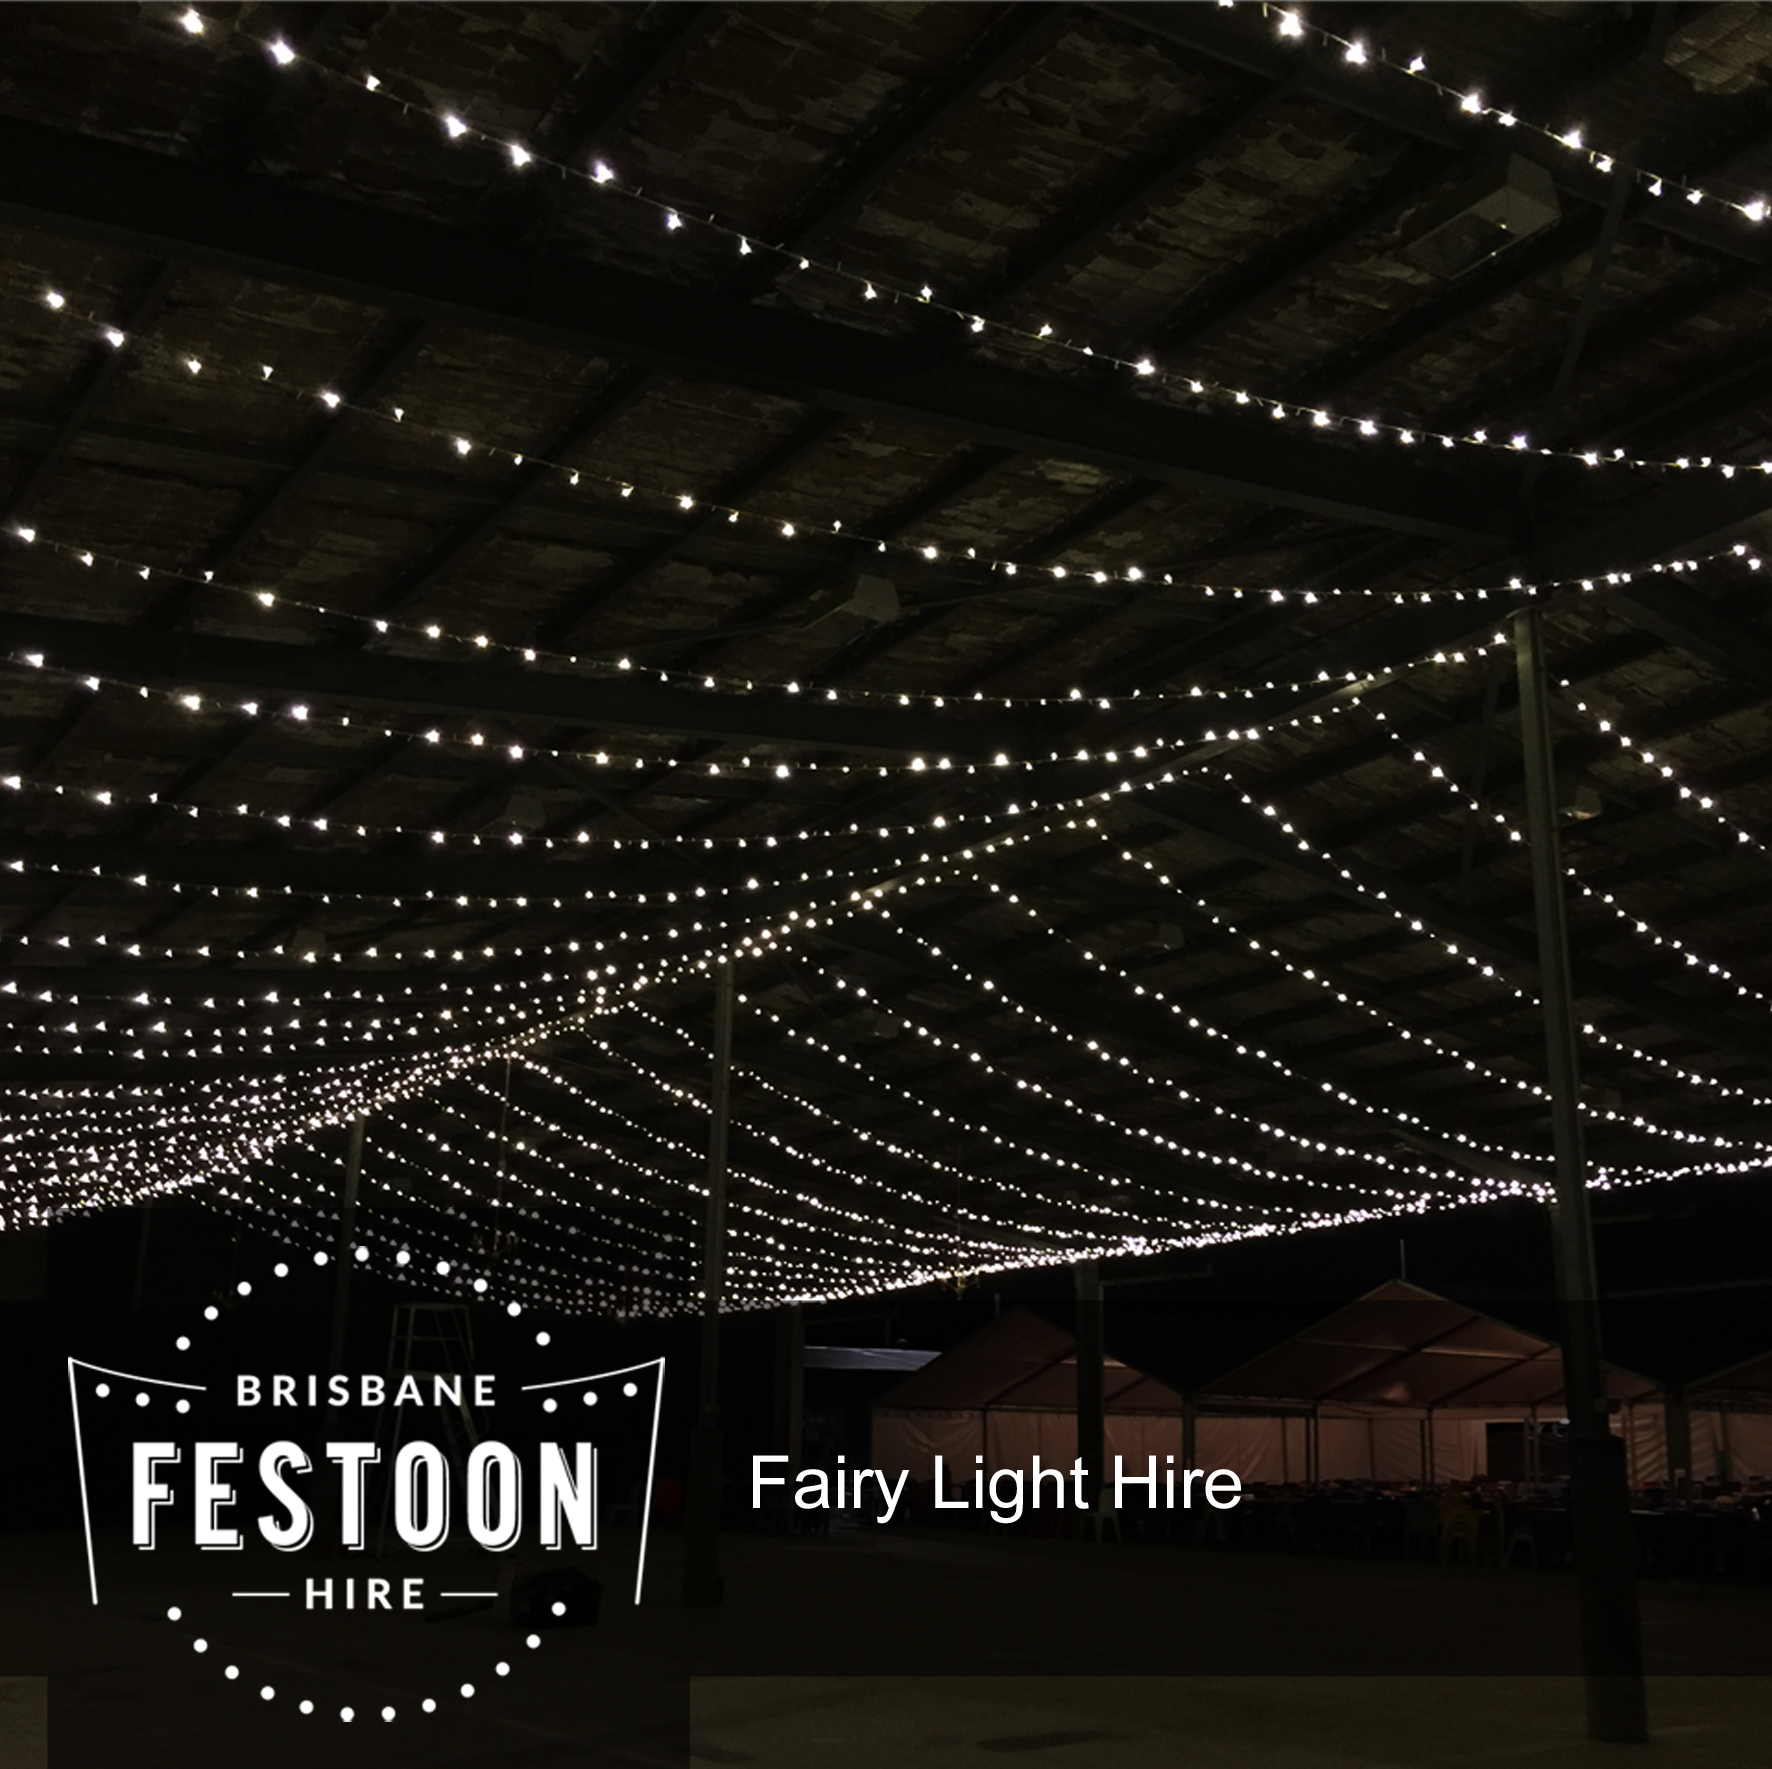 Brisbane Festoon Hire - Fairy Light Hire 1.jpg